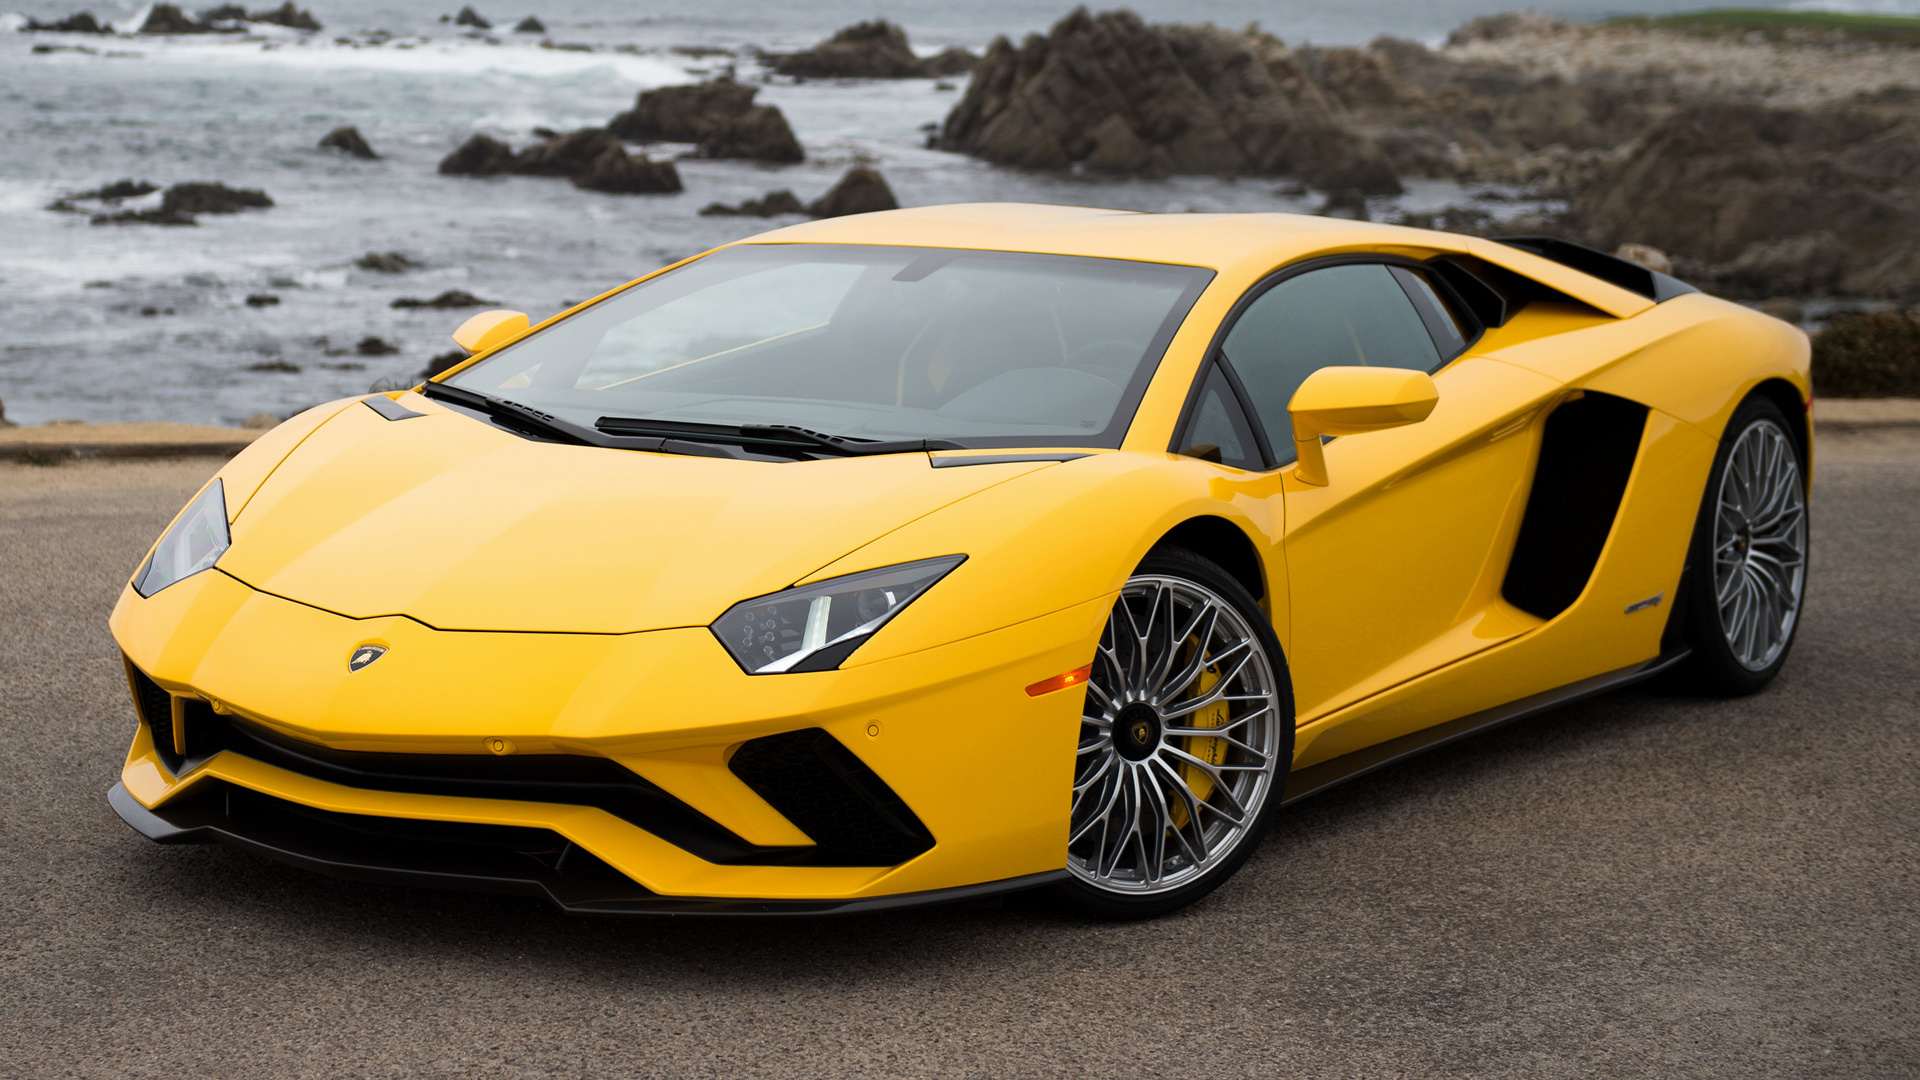 2017 Lamborghini Aventador S HD Wallpaper Background Image 1920x1080